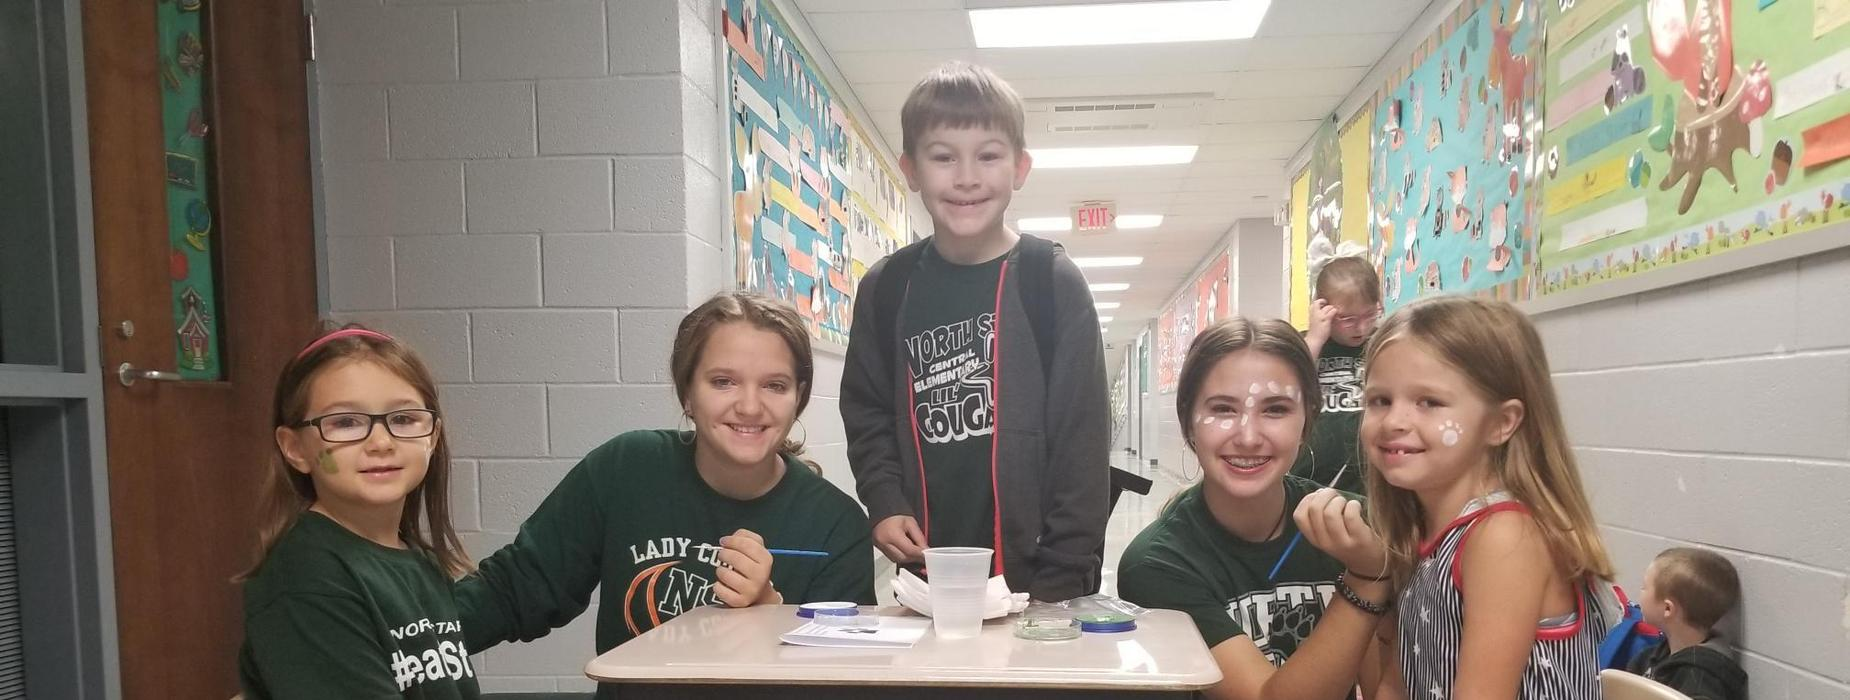 Face Painting at Central Elementary